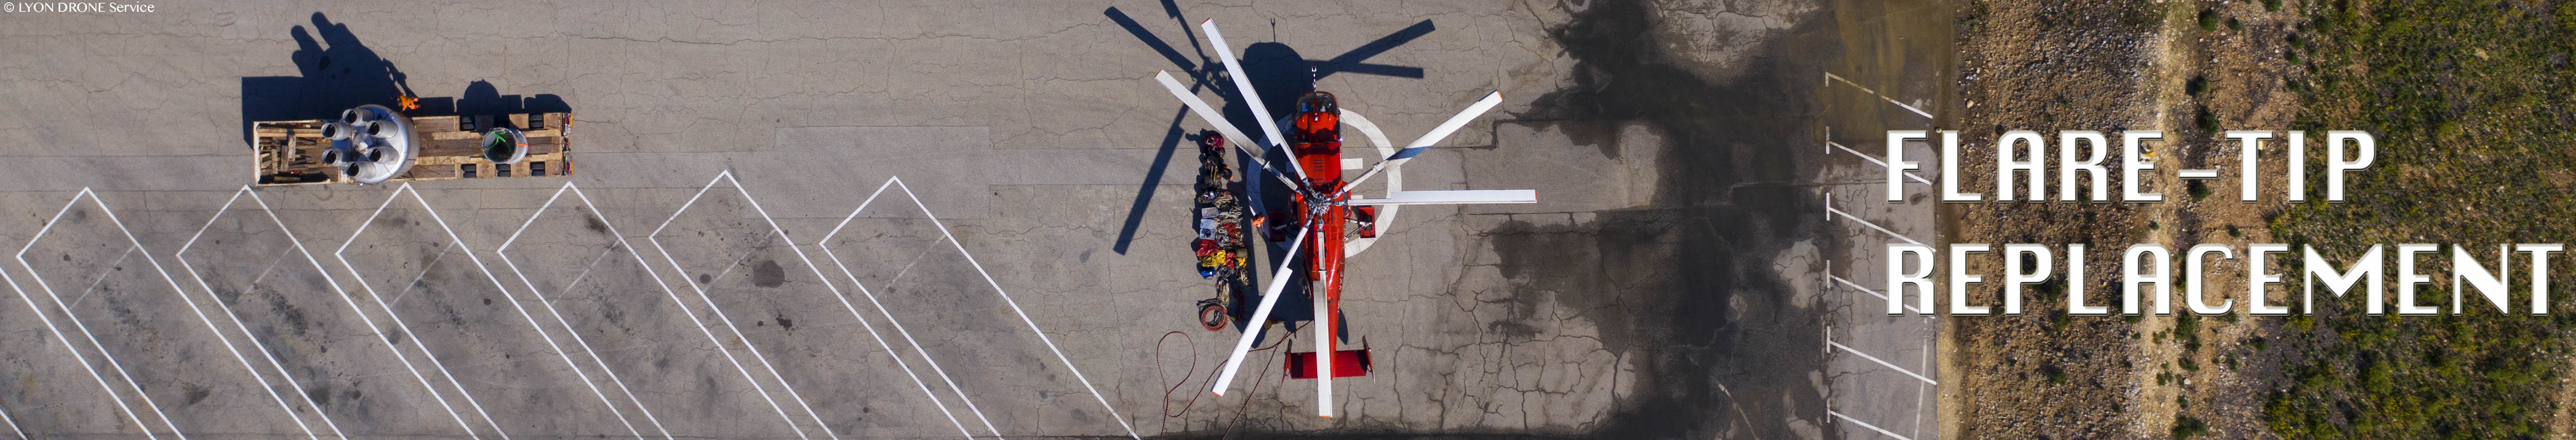 Helicopter flare-tip replacement and maintenance services. Heli-levage - lifting helicopter long line